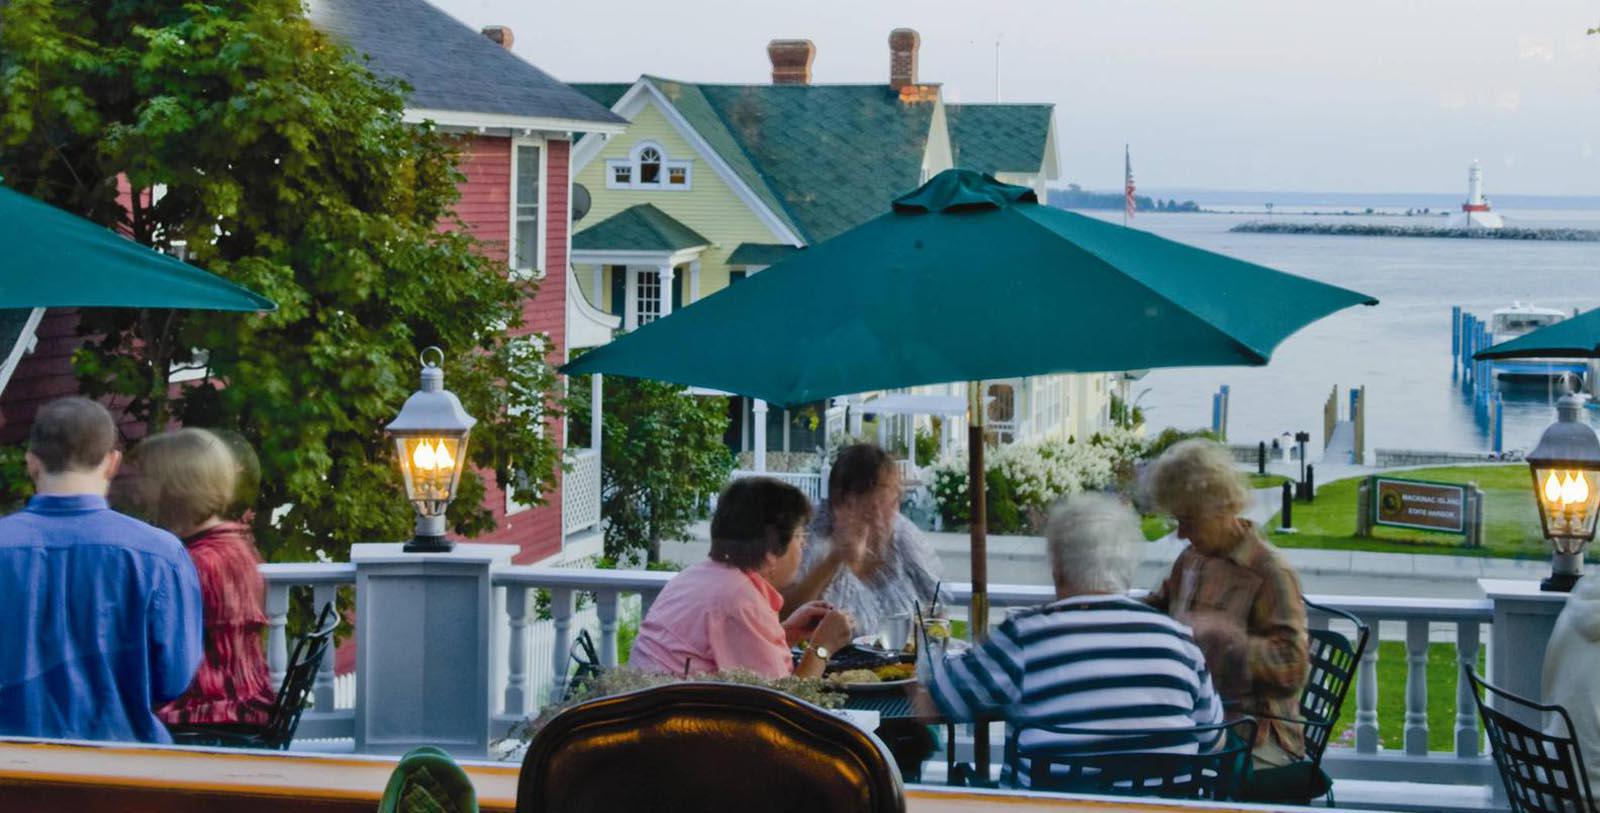 Image of 1852 Grill Room Patio, Island House Hotel in Mackinac Island, Michigan, 1852, Member of Historic Hotels of America, Taste